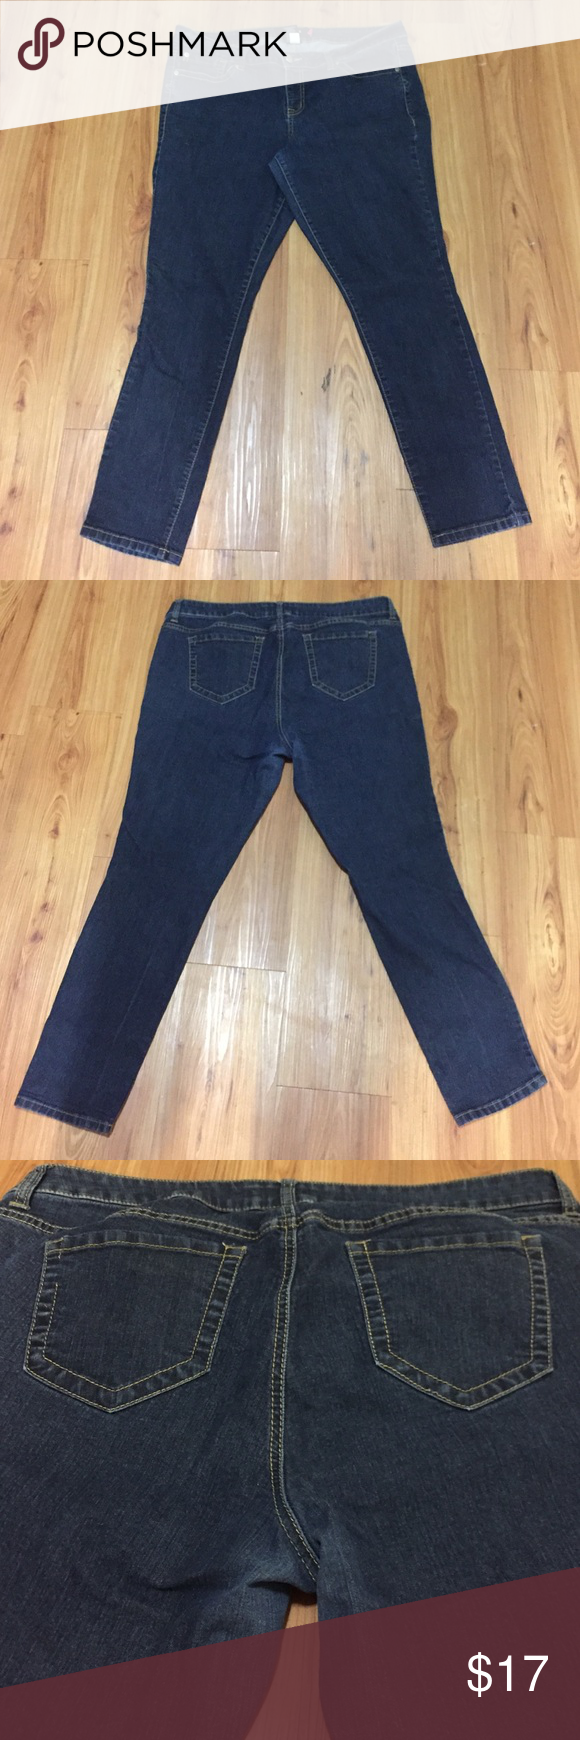 """Torrid Sz 20S Skinny Jeans Torrid Sz 20S skinny jeans. 5 pockets. GUC with a little wear on inner thigh. Waist: 40""""; Rise: 10""""; Inseam: 29"""". torrid Jeans Skinny"""